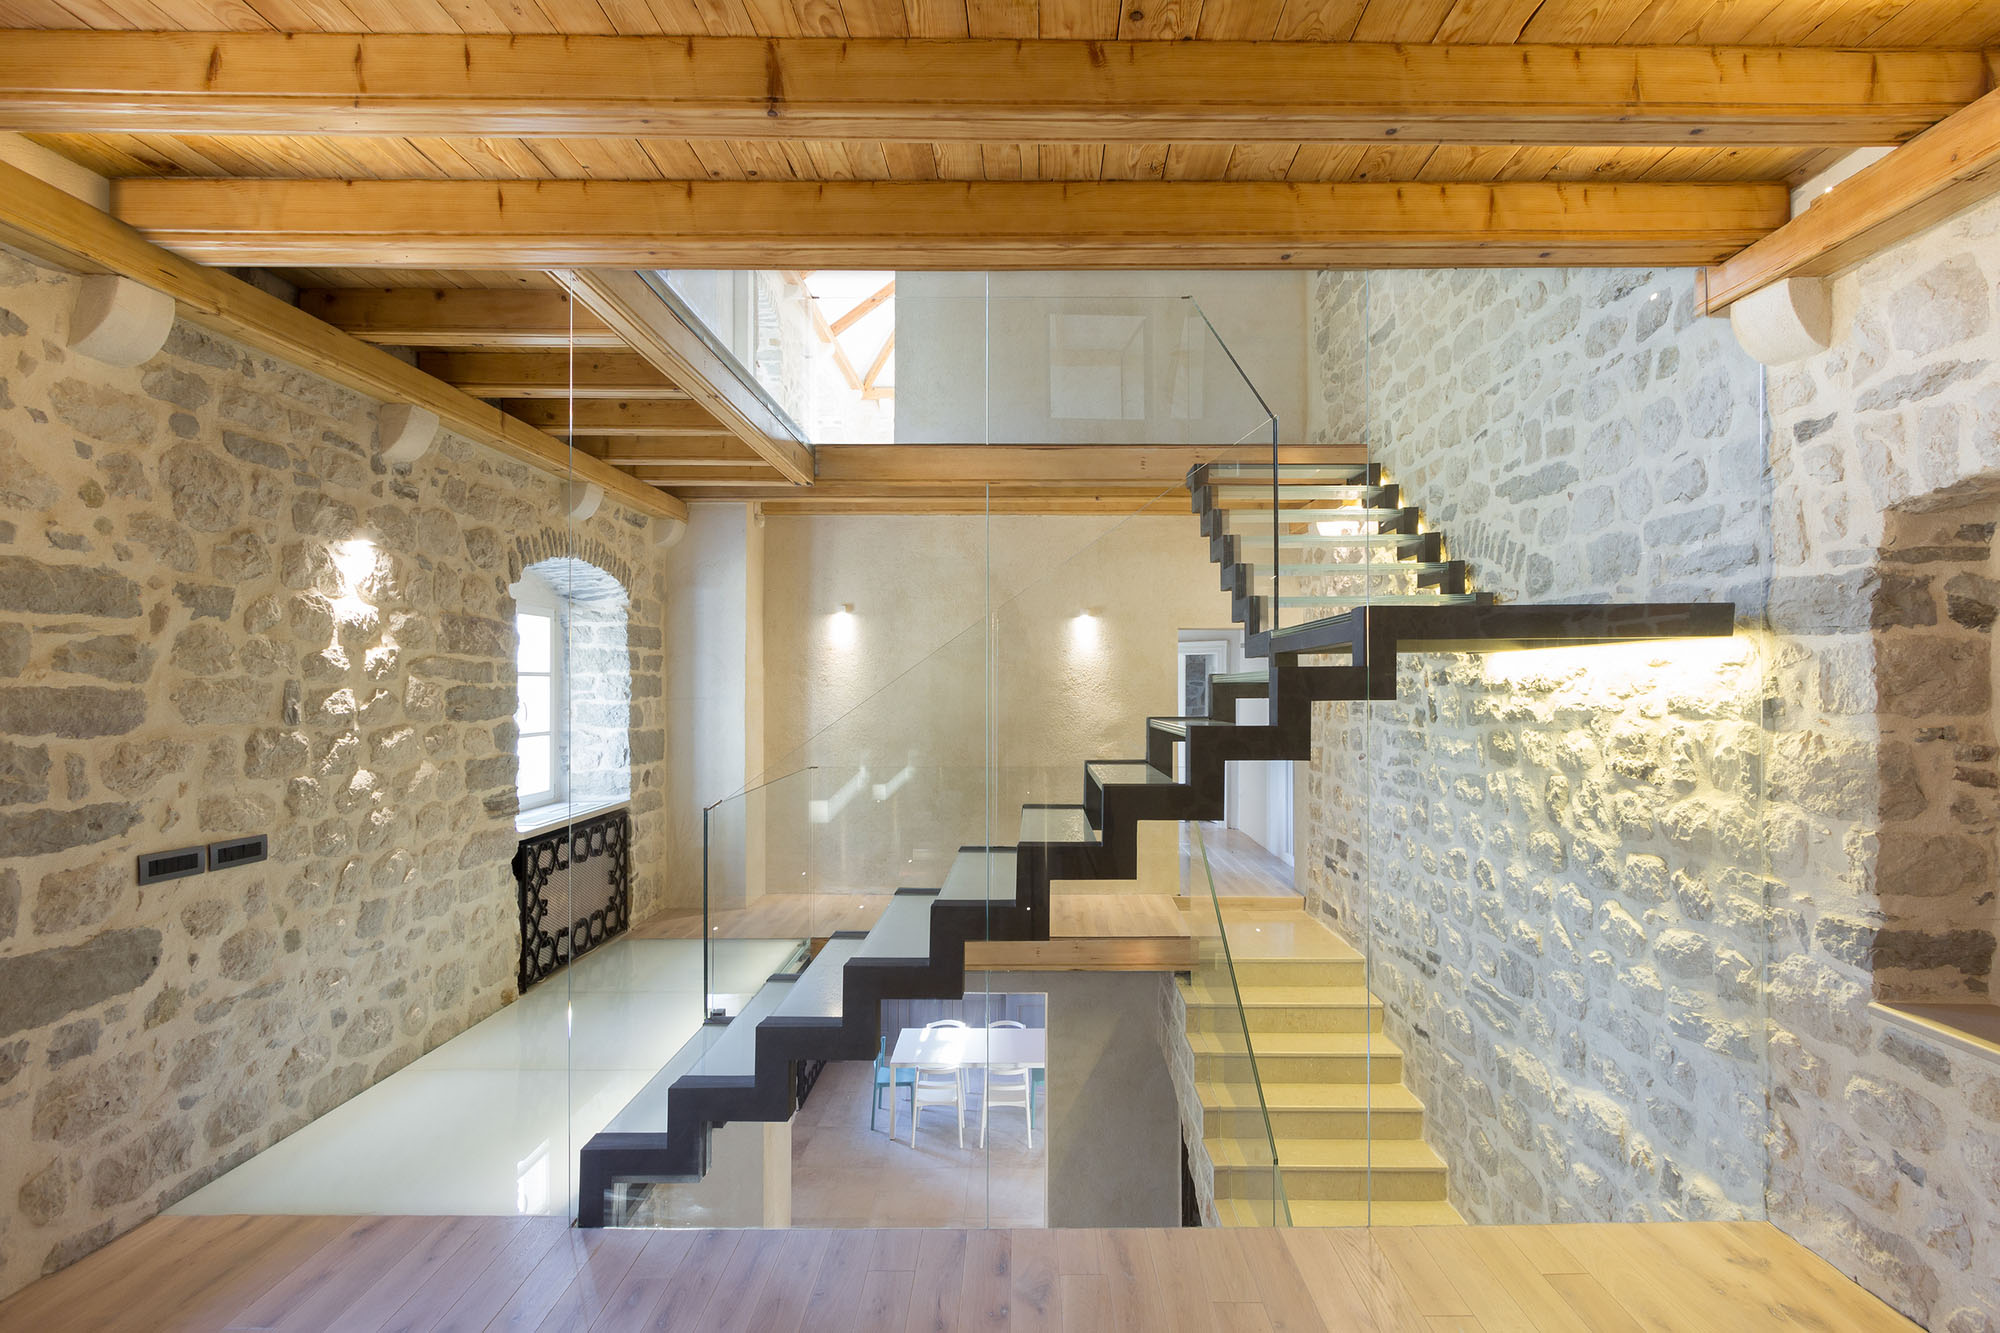 Exceptional Rustic Stone Walls And Modern Glass Staircase